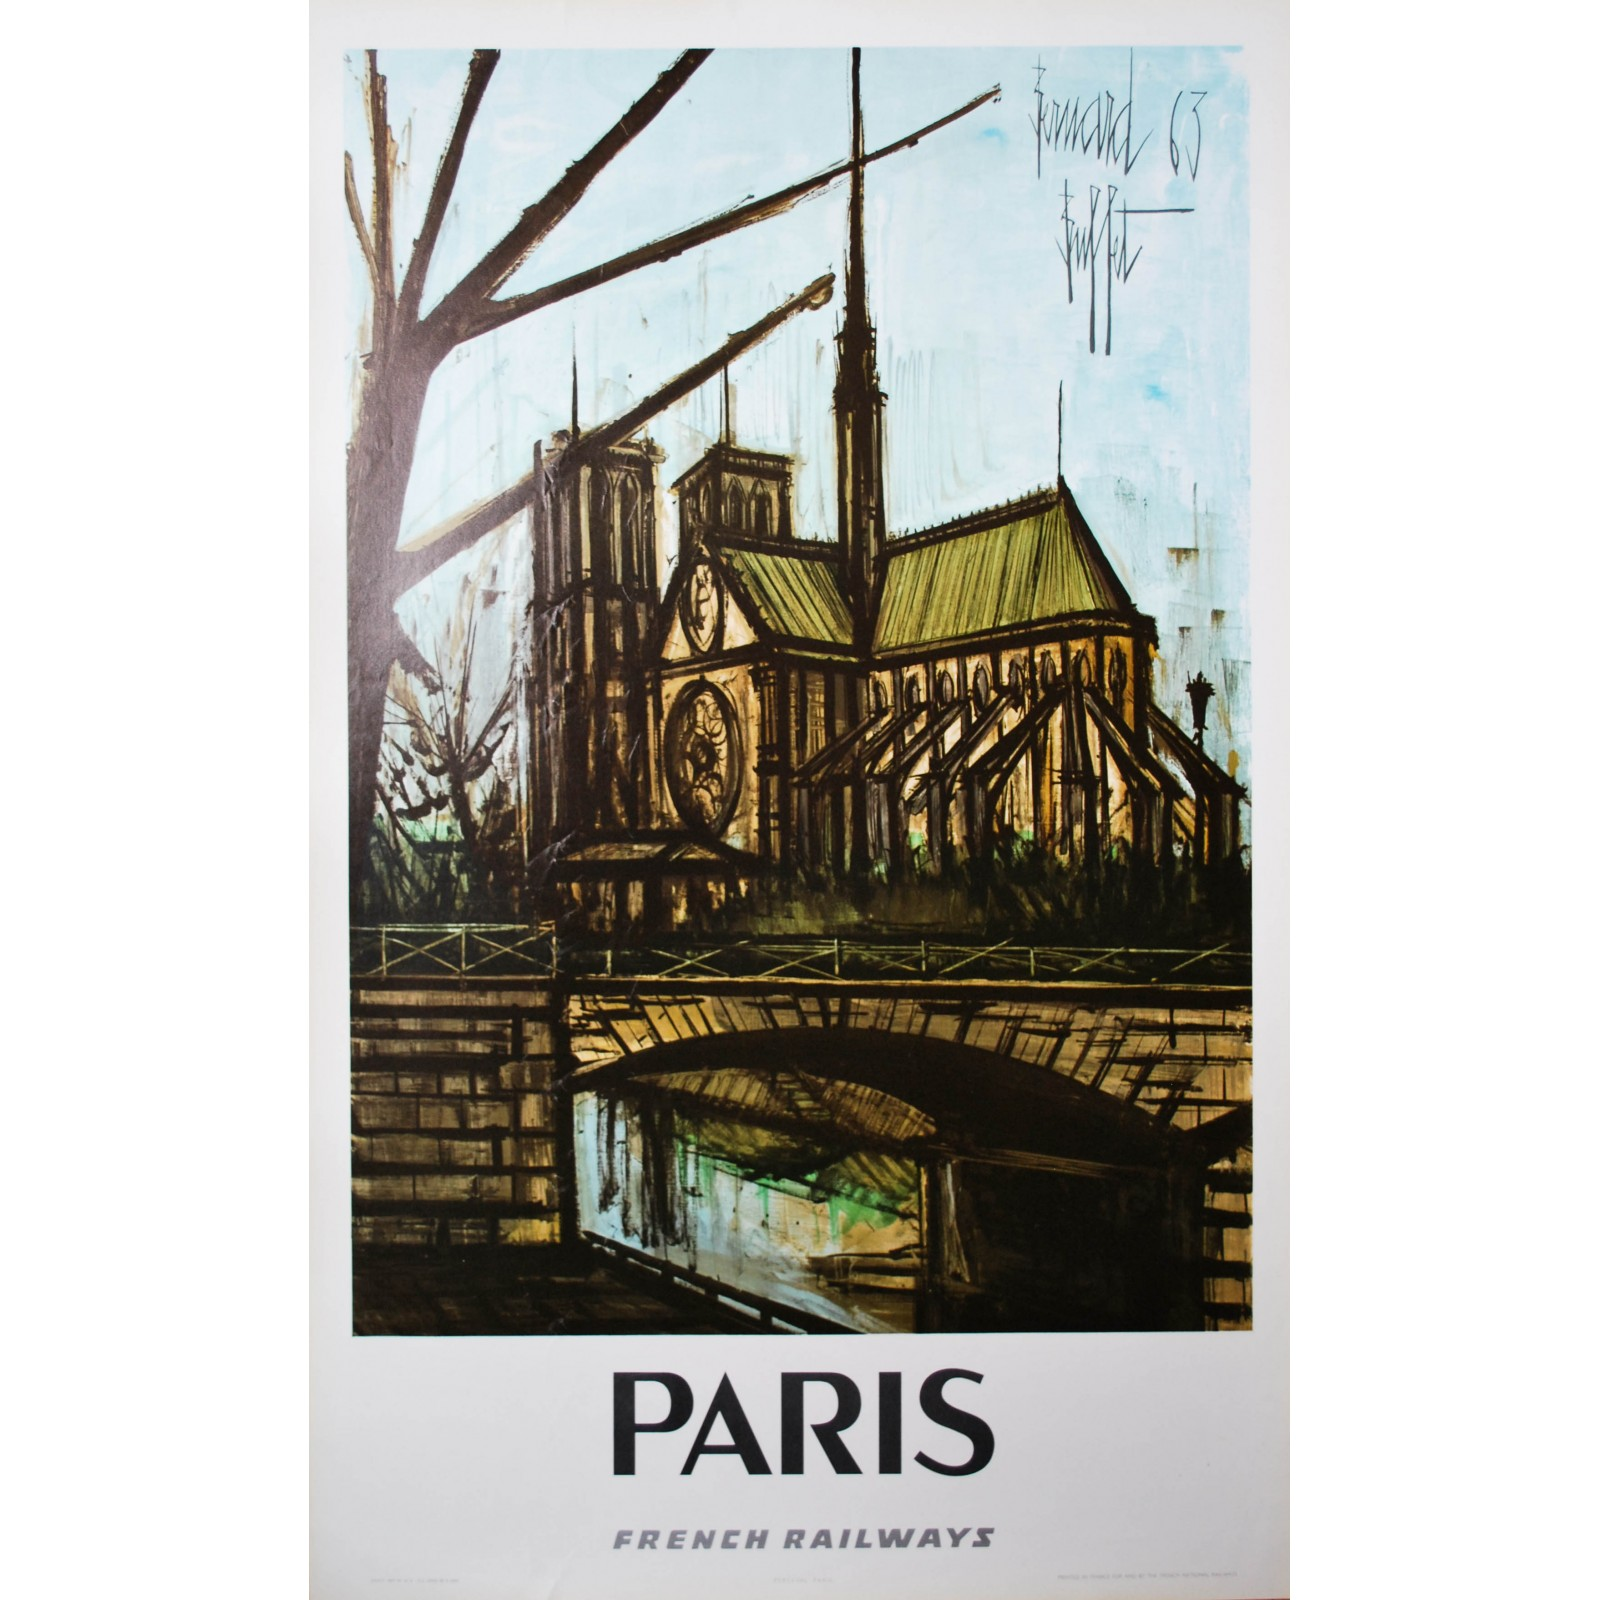 Paris bernard buffet 1963 posters we love for Bernard buffet vente